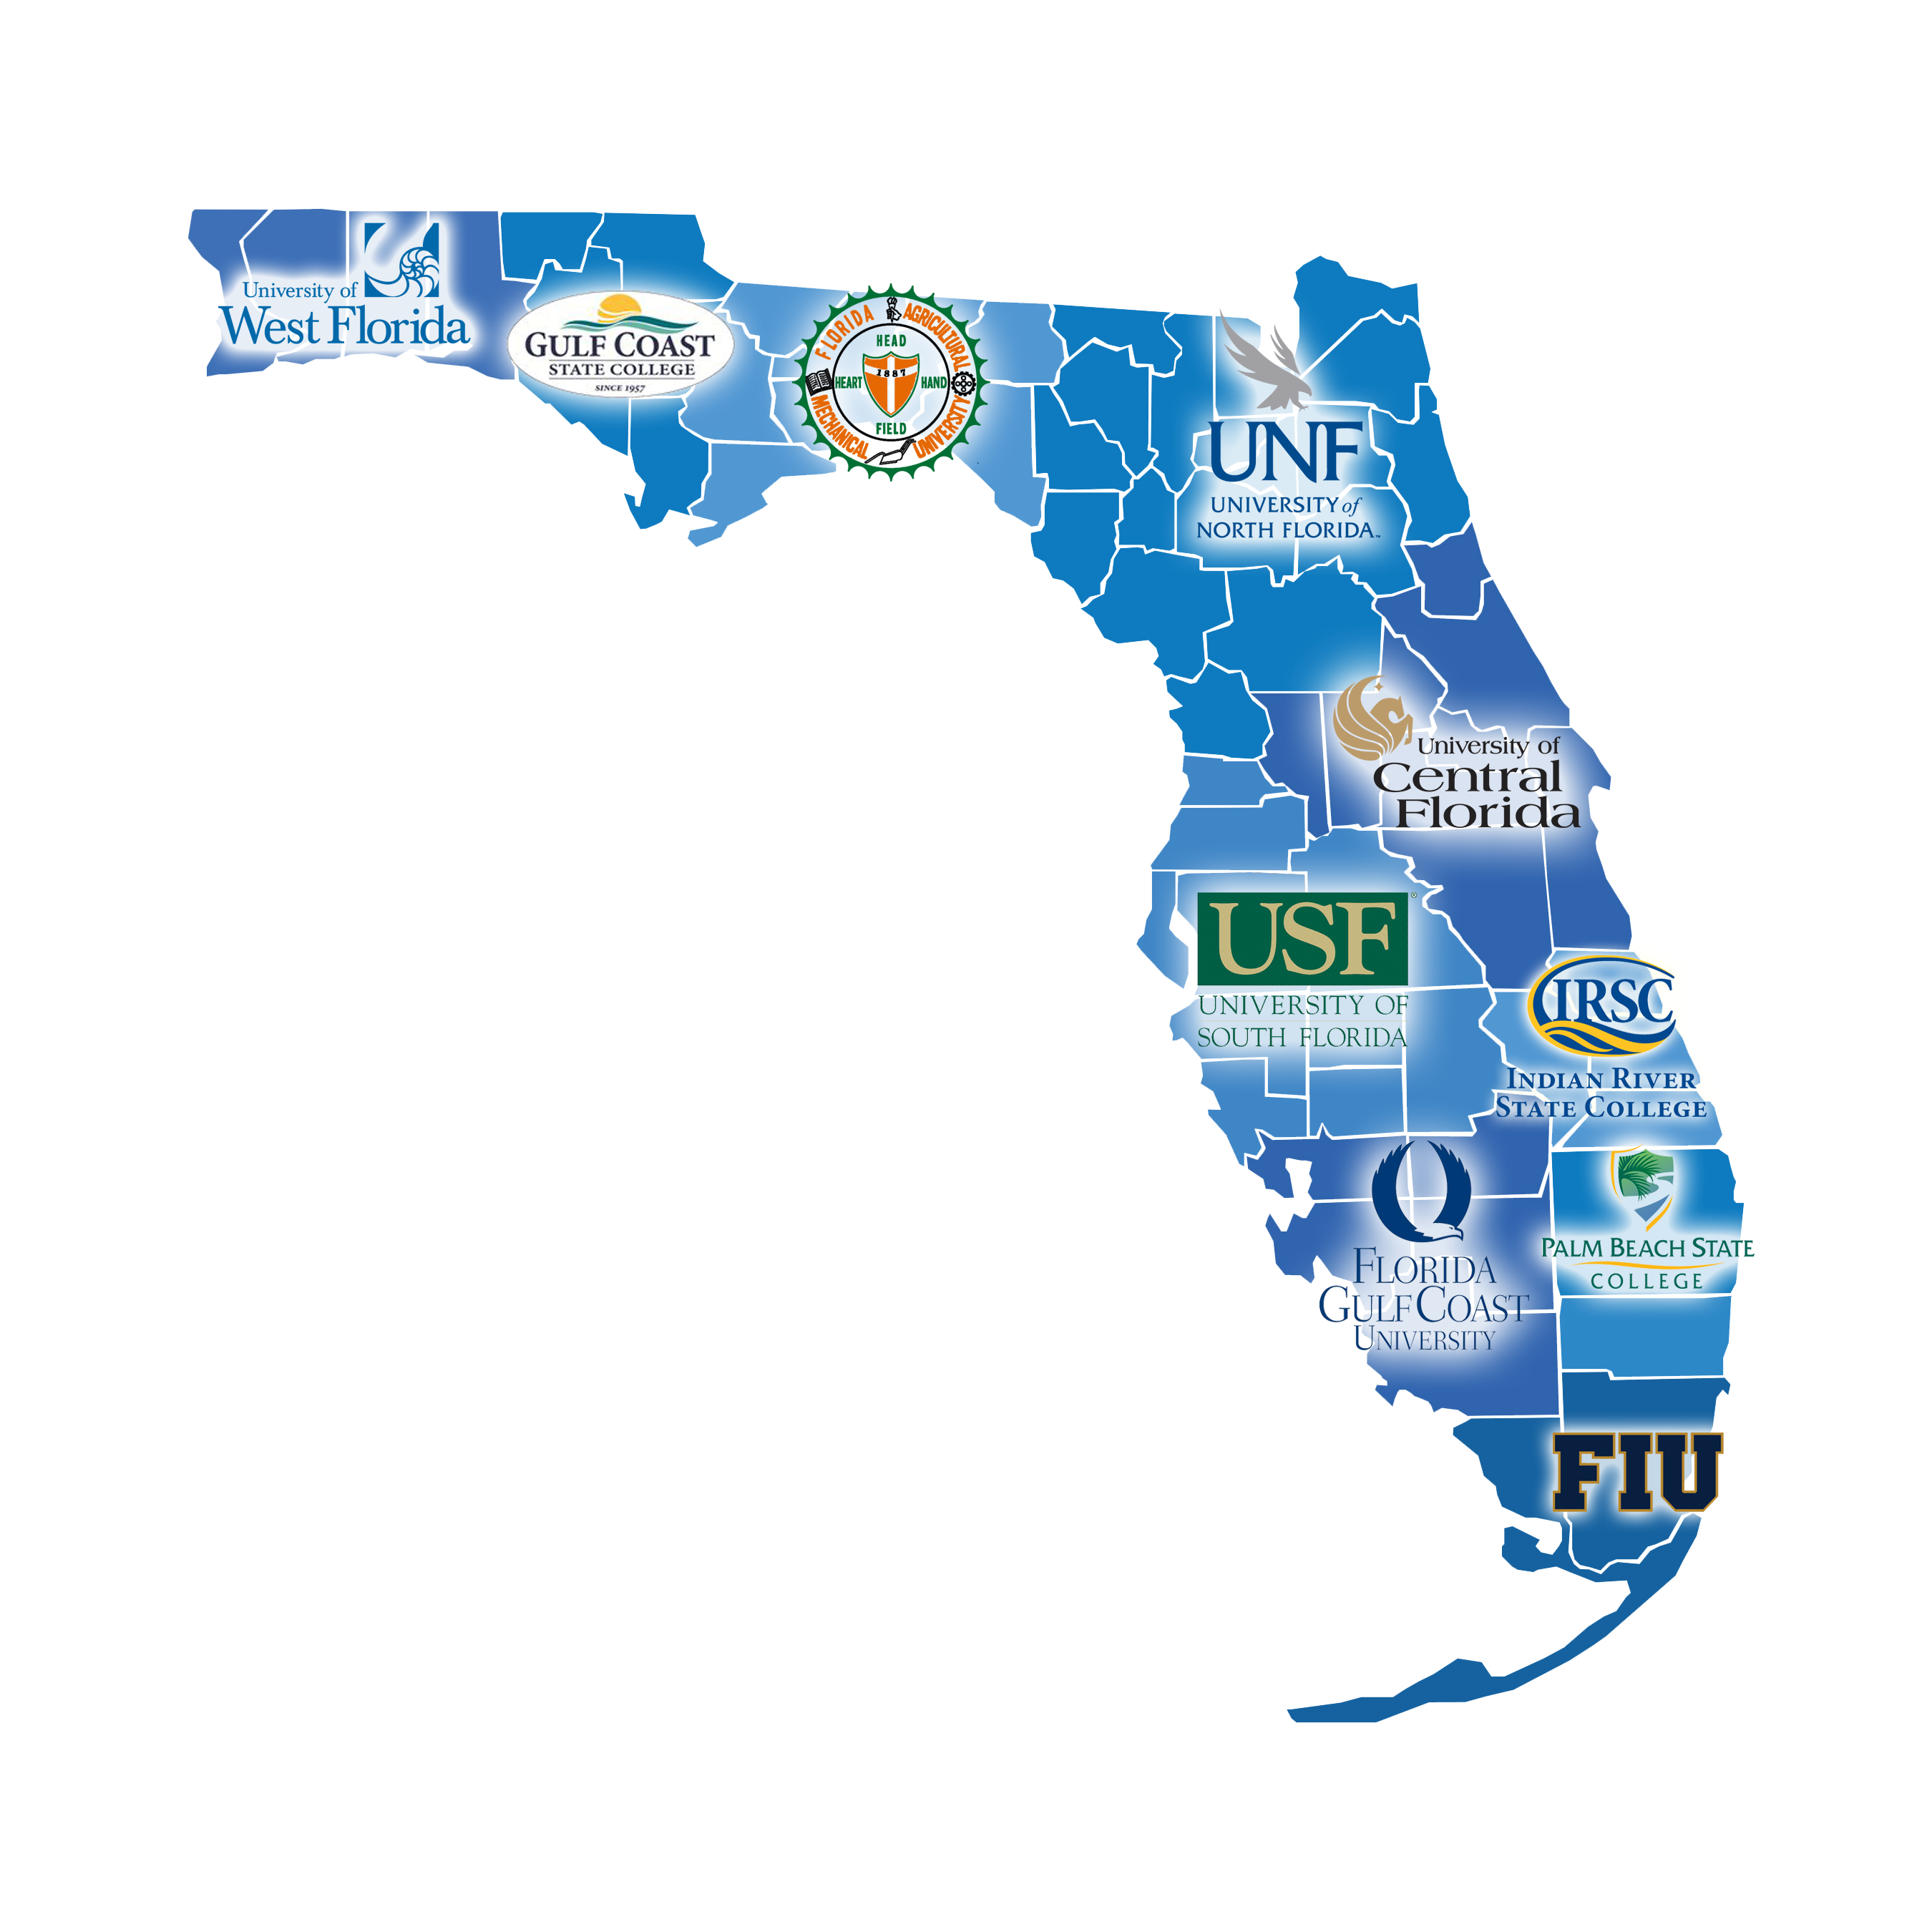 florida map of universities